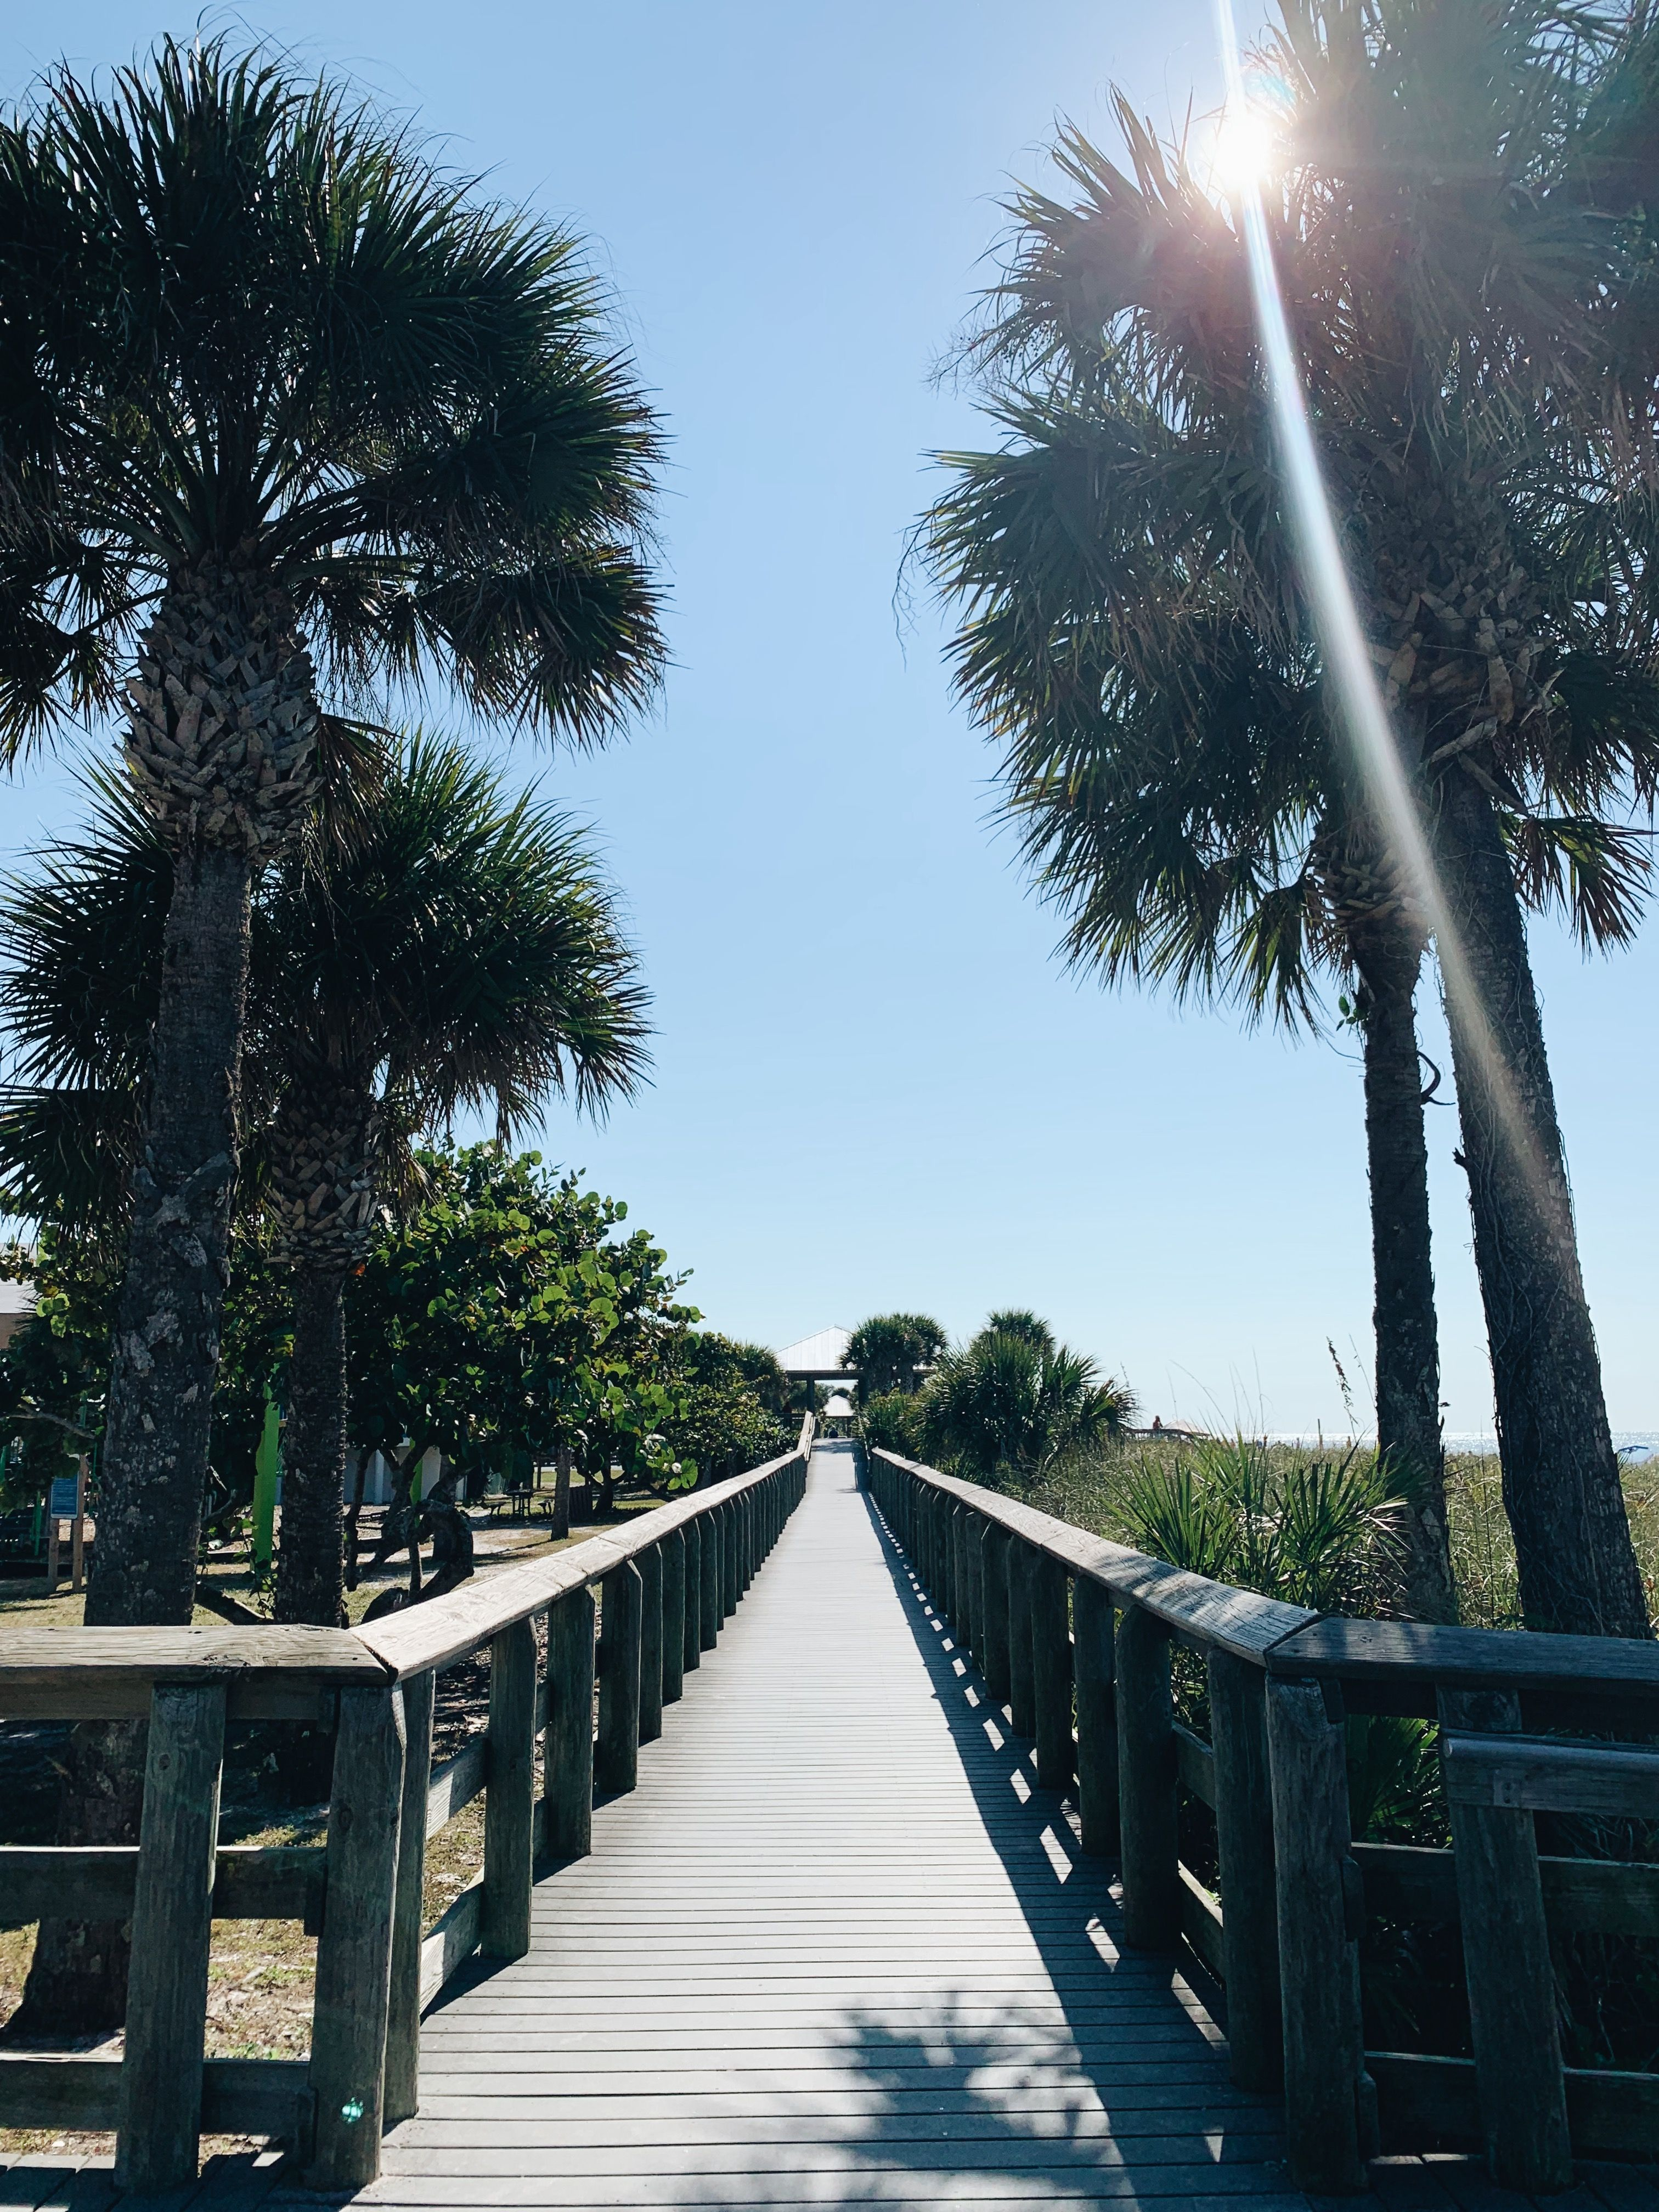 Pin by Janetta on My Pictures in 2020   Englewood beach ...